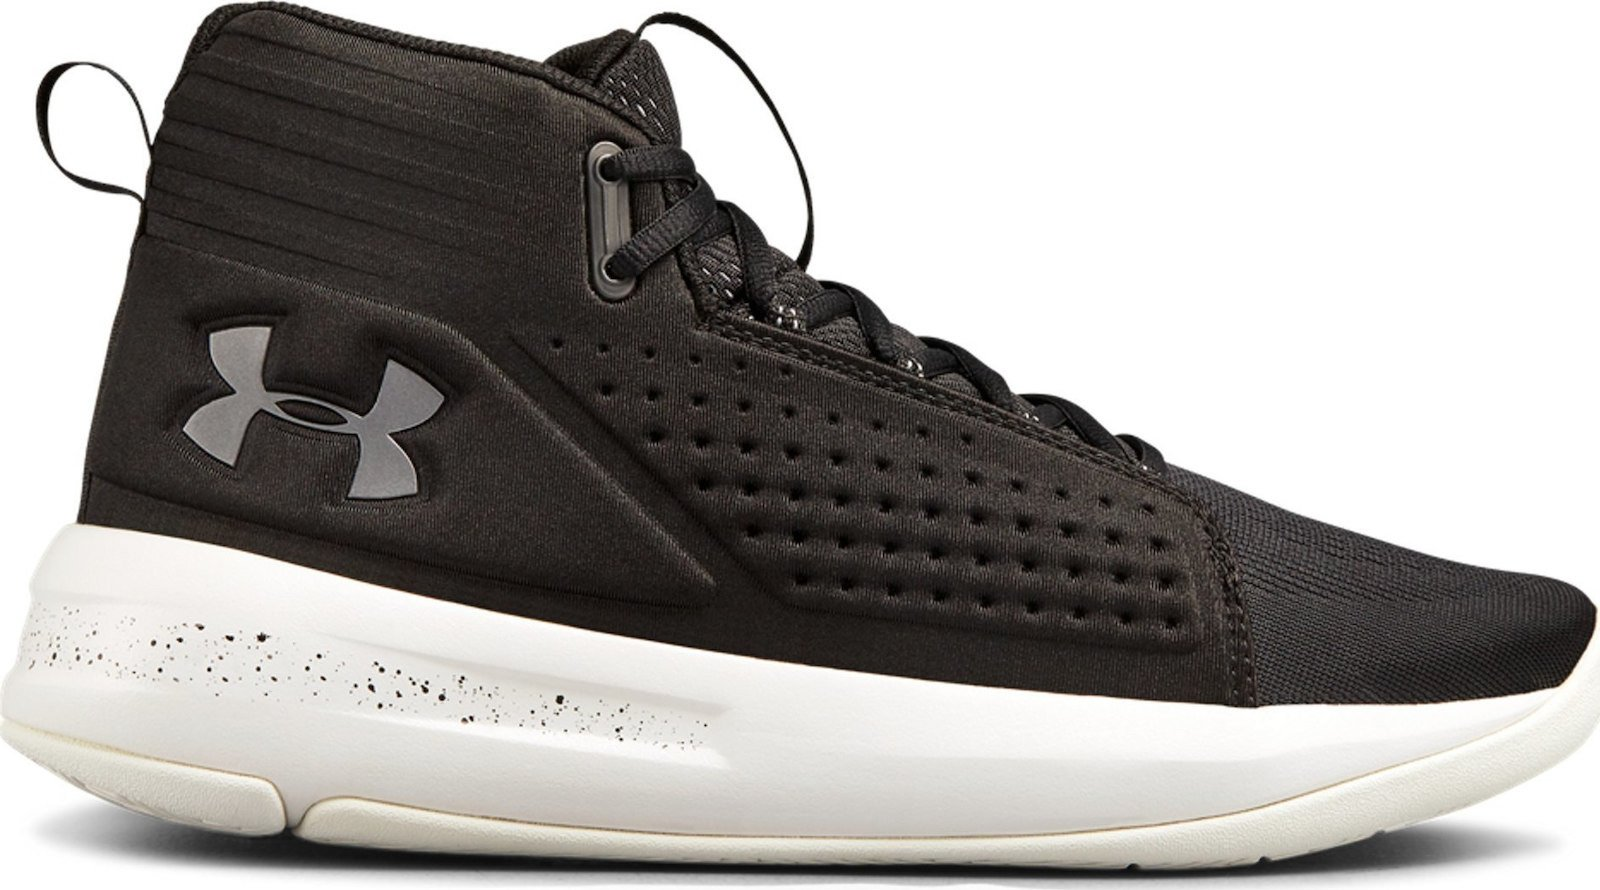 best loved 66f51 d6367 Under Armour Torch Fade Basketball shoes - 3020620-001